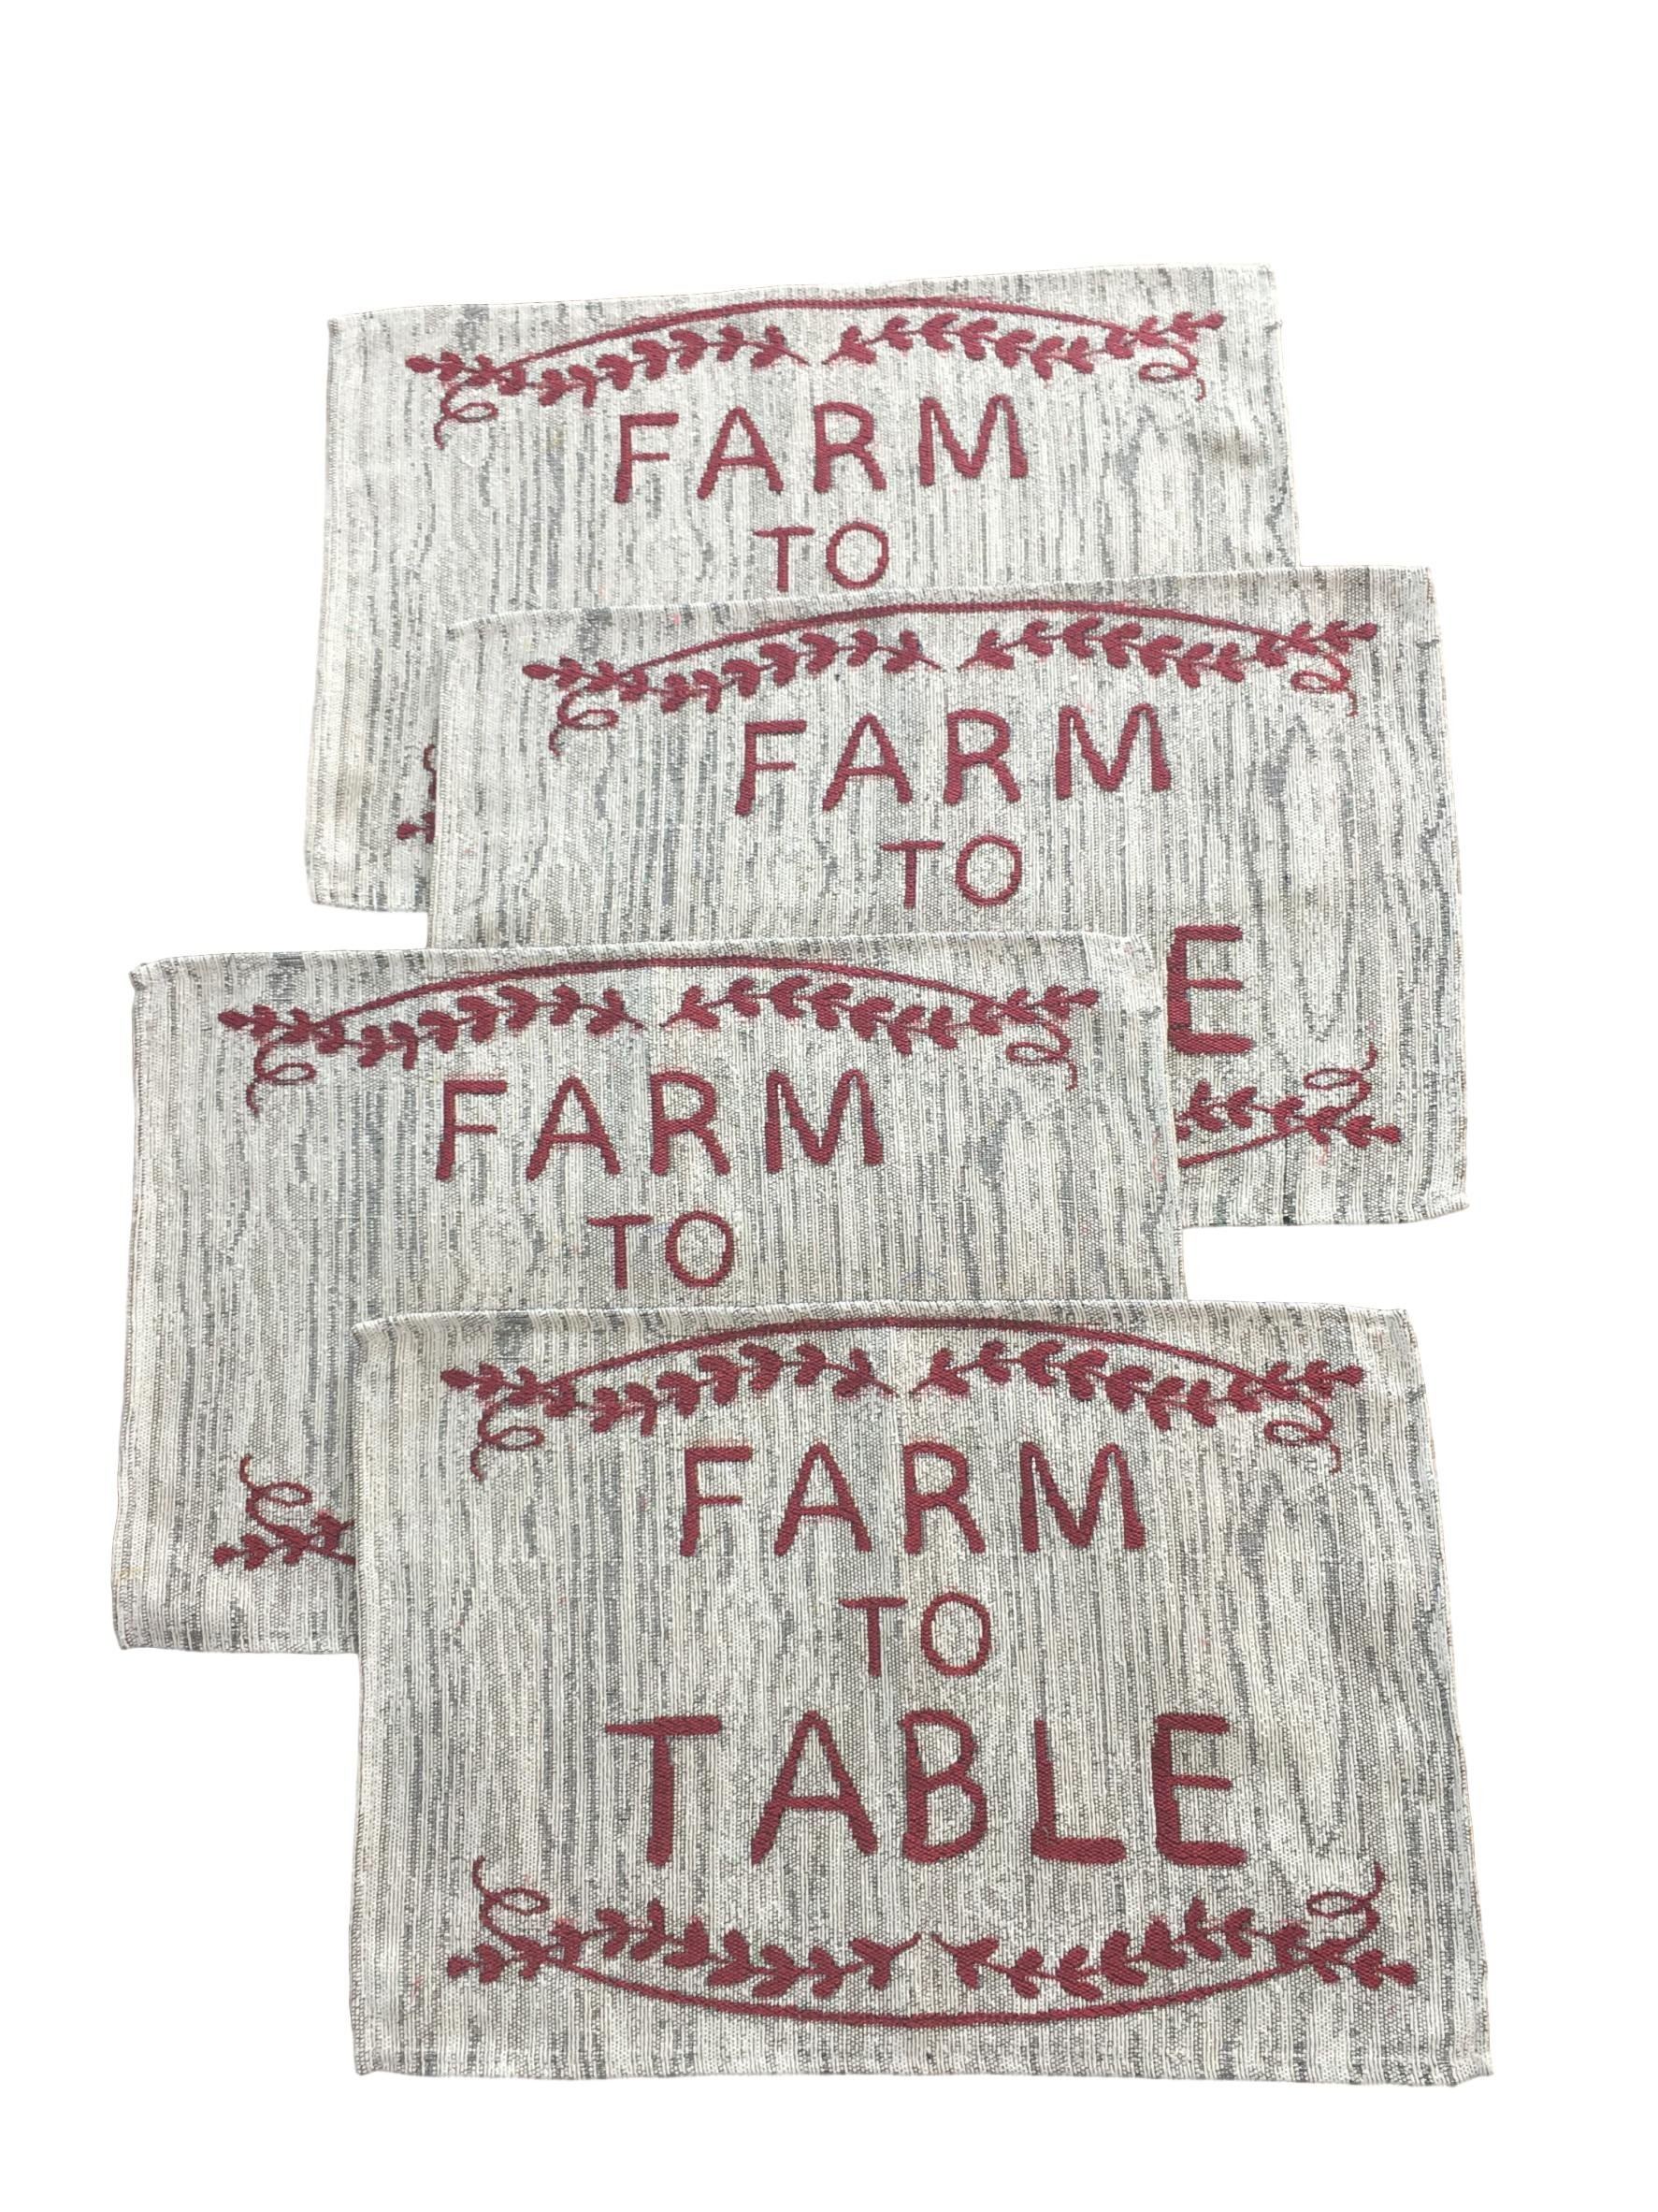 Home Concepts Farm Country Style Linen Placemats Set of 4 - Farm Fresh, Farmer's Market, Farm to Table Embellished 19 in x 13 in (Farm Fresh All Day Long Everyday)